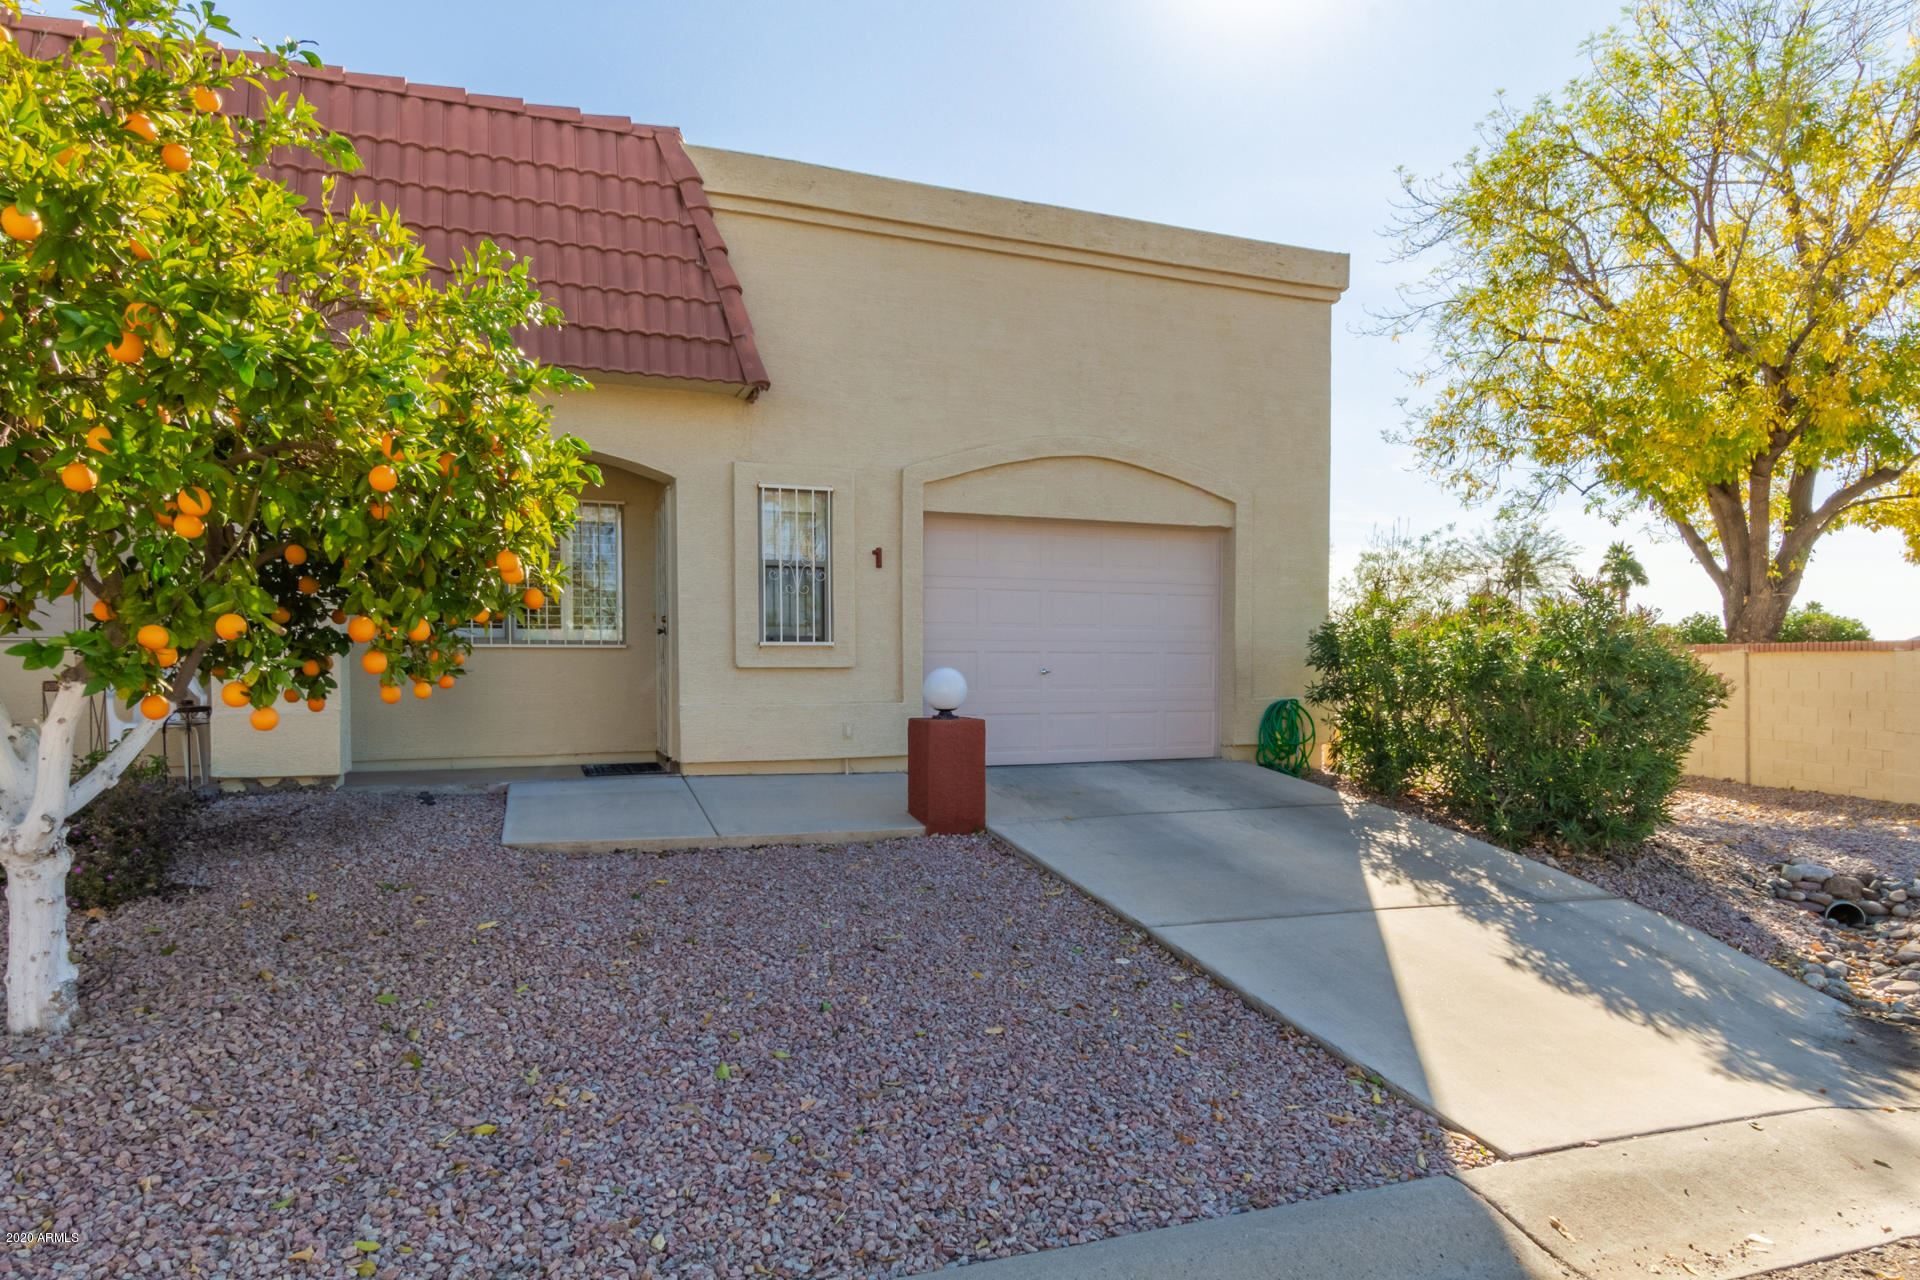 1951 N 64TH Street #1, Mesa, AZ 85205 - MLS#: 6026293